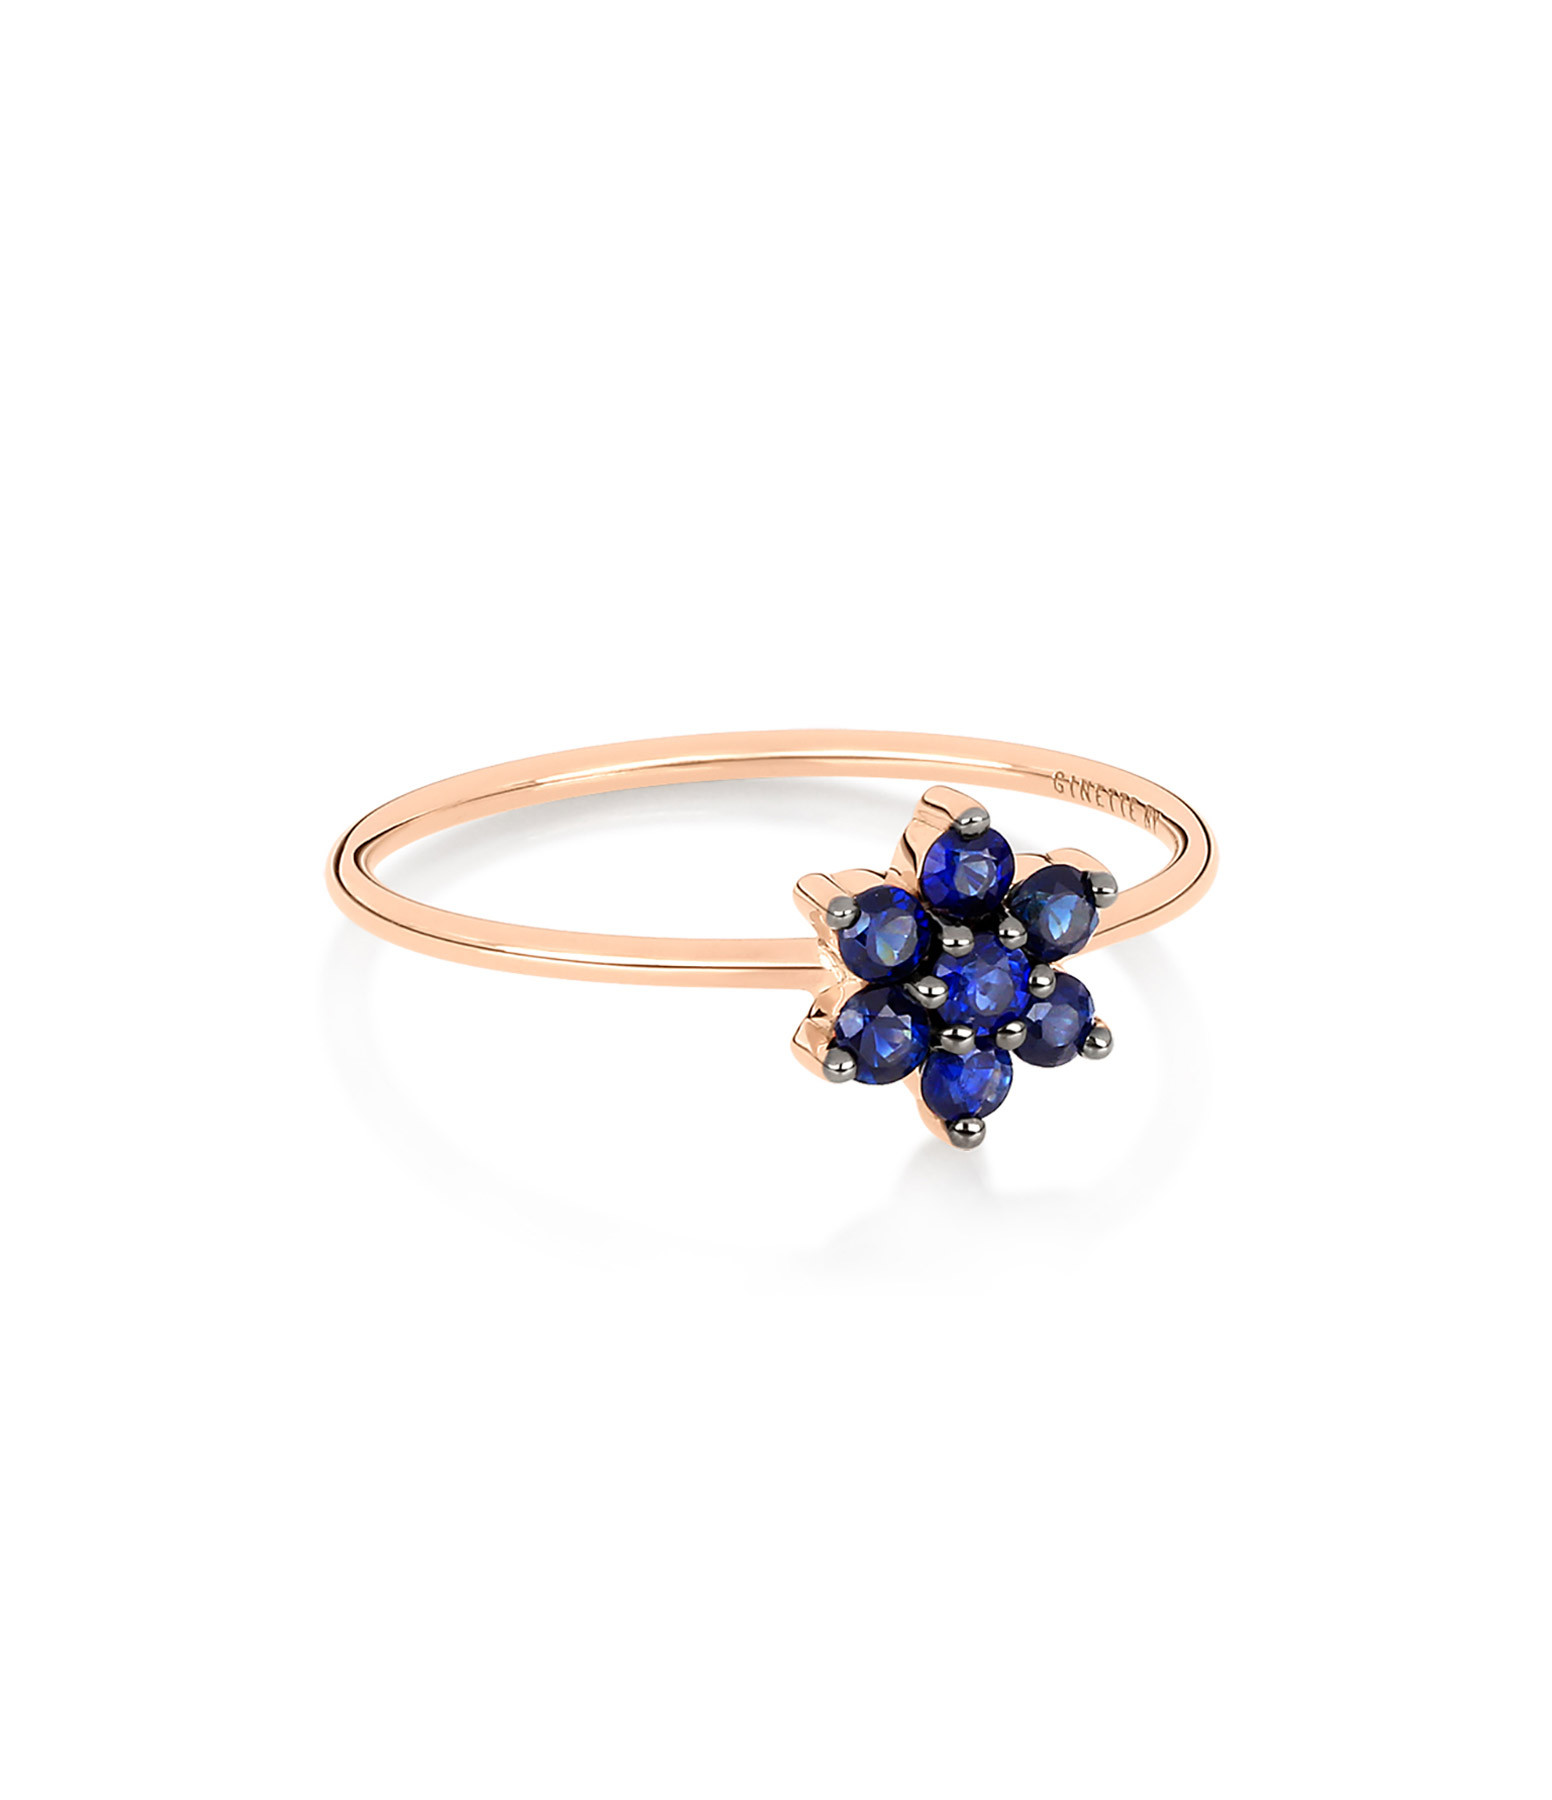 GINETTE NY - Bague Star Saphirs Or Rose